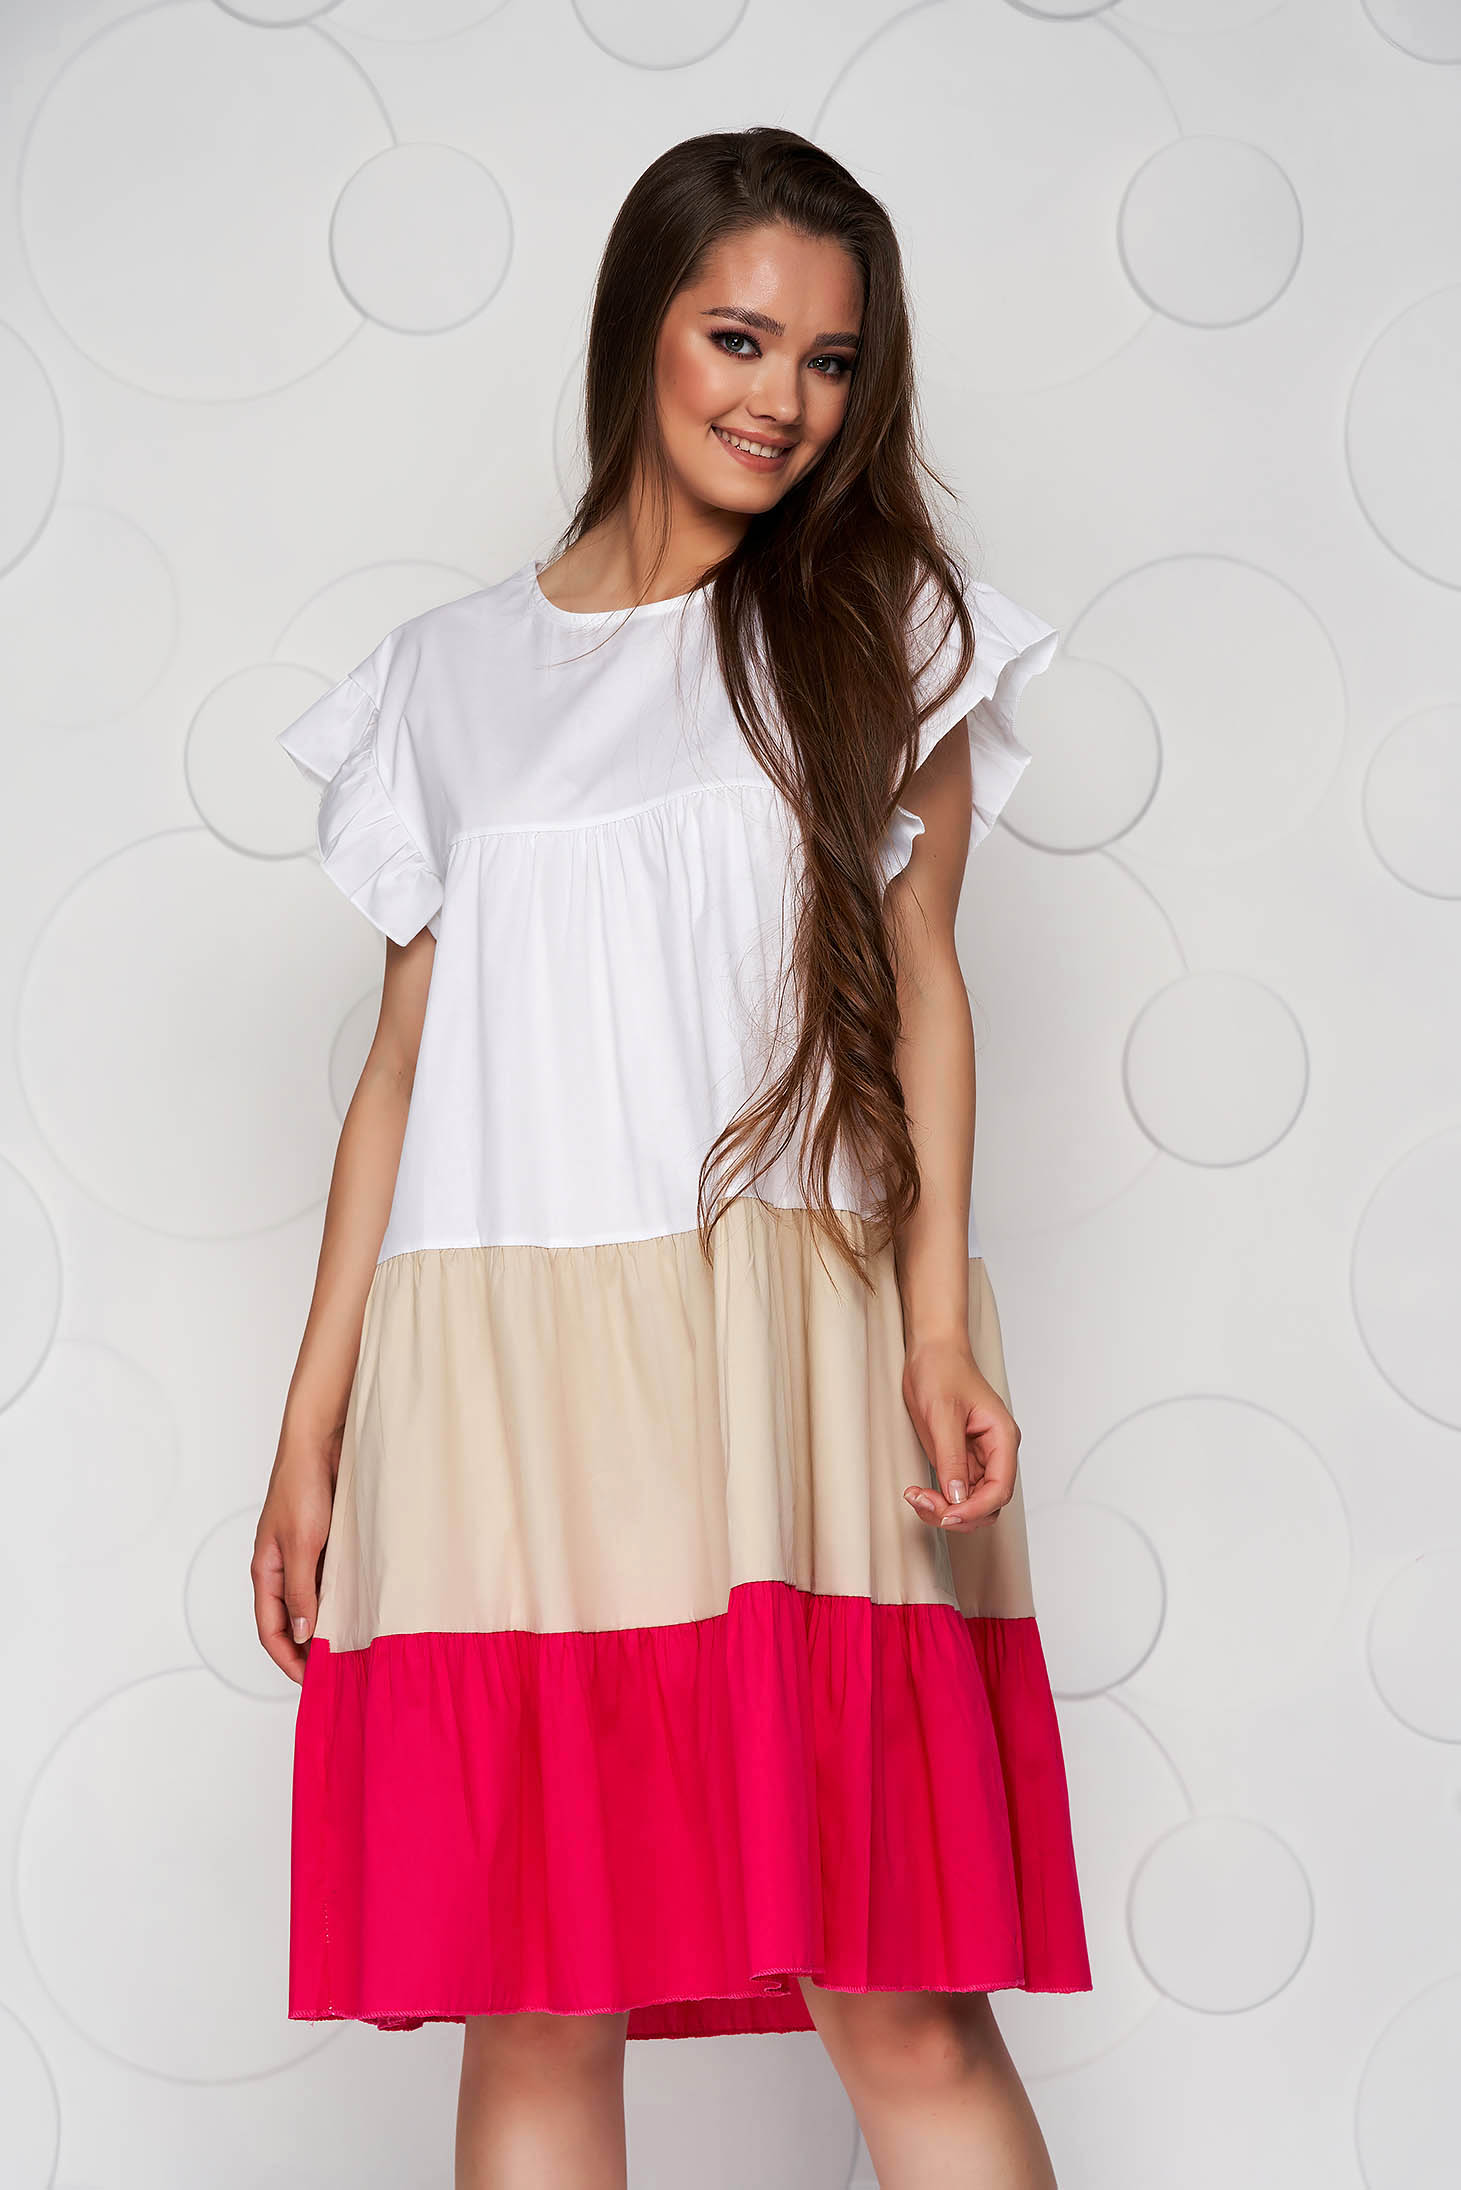 Pink dress thin fabric loose fit midi with ruffle details airy fabric